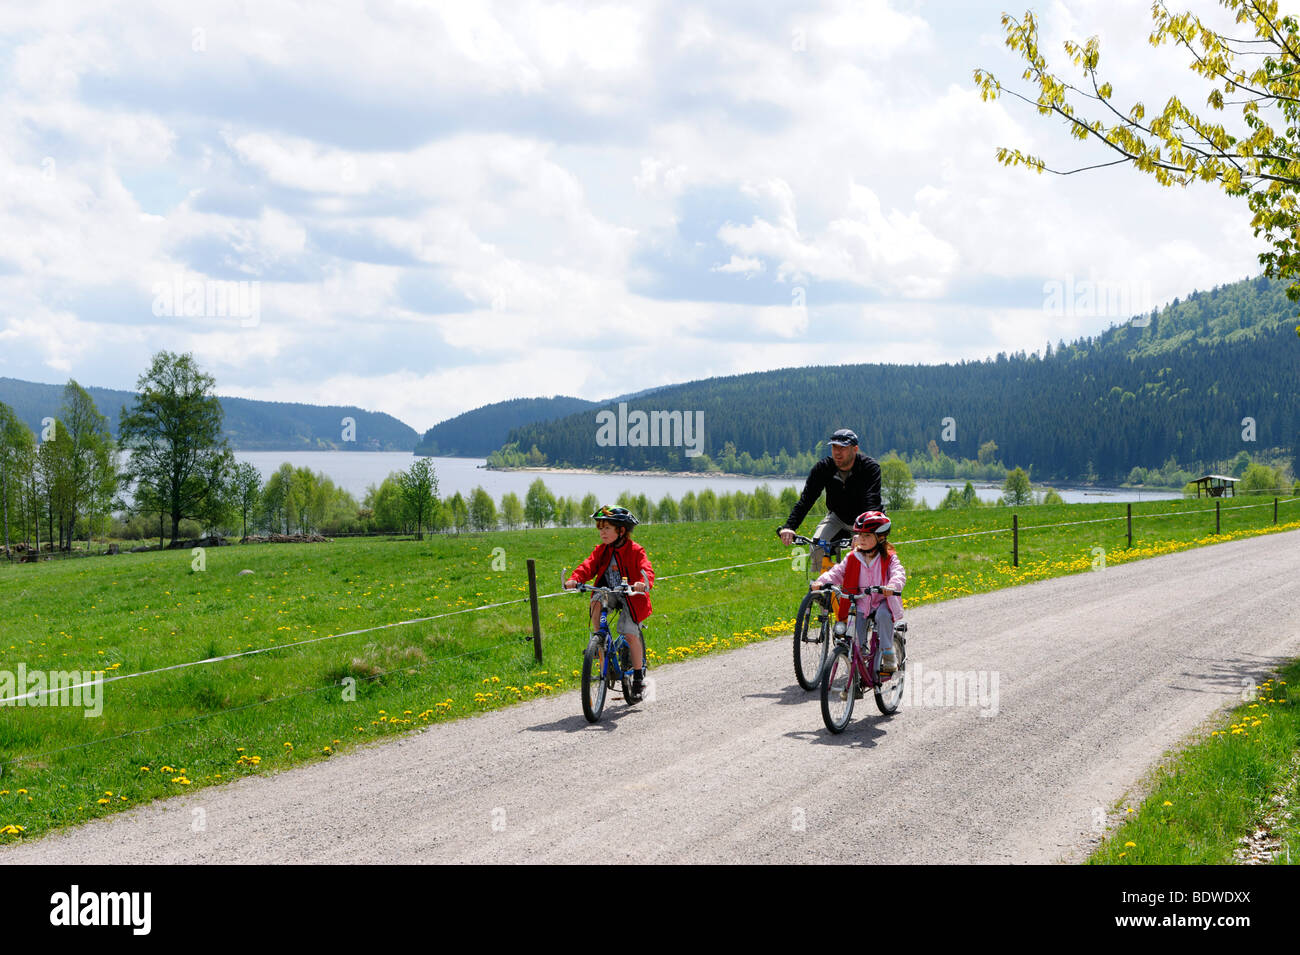 Familiy on a bicycle tour at the Schluchsee lake, Breisgau, Hochschwarzwald Upper Black Forest, Black Forest, Baden - Stock Image